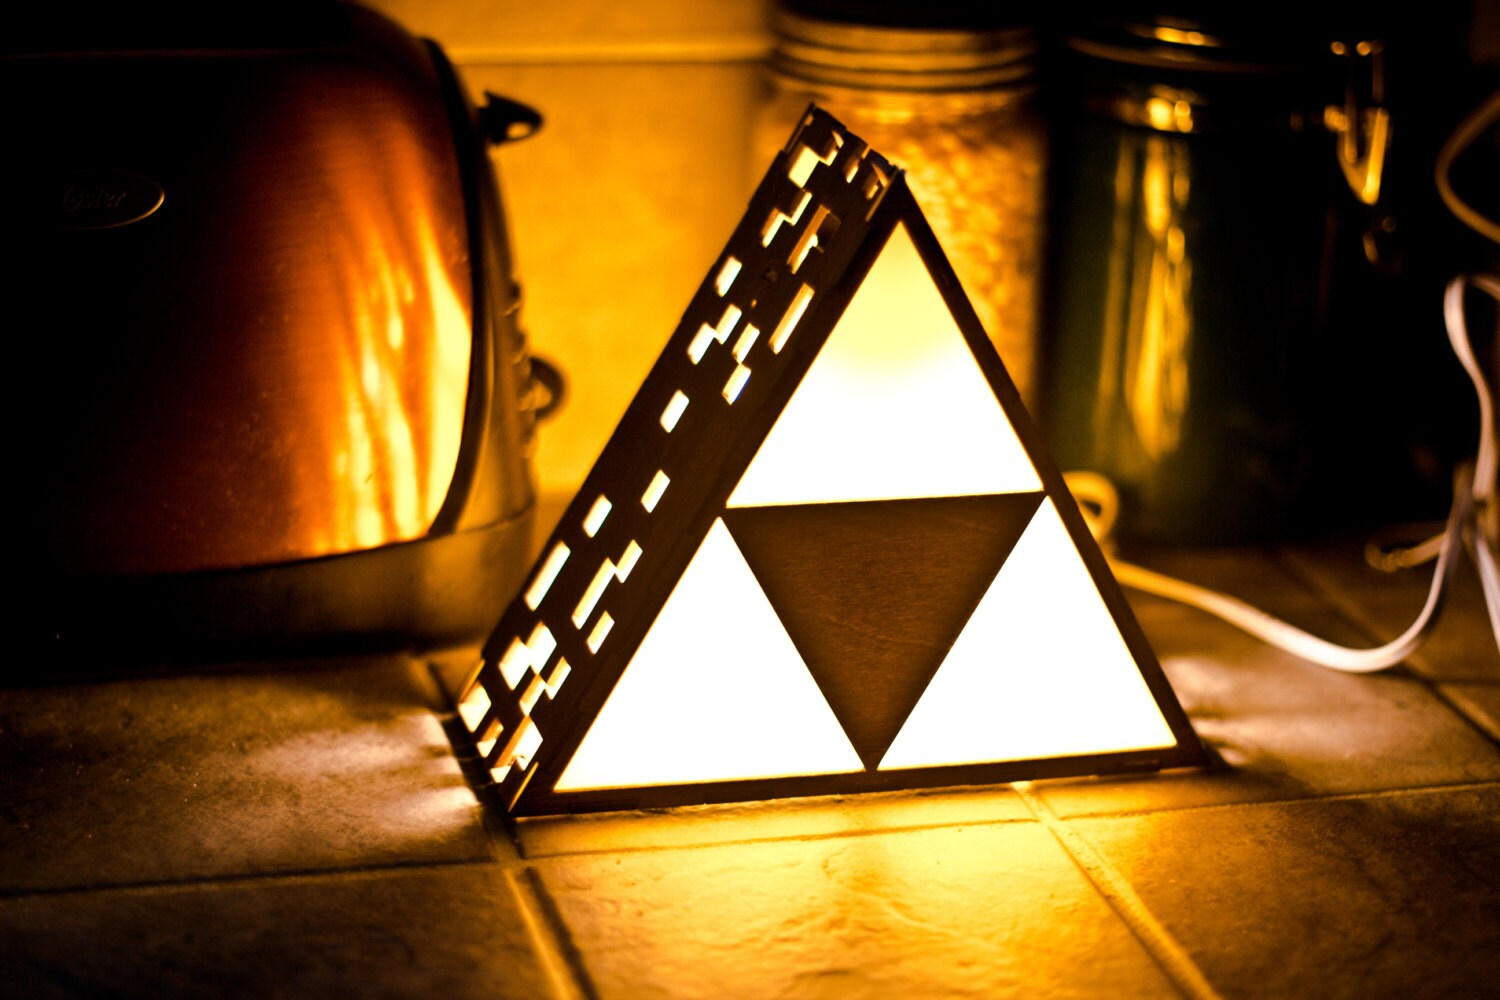 Lampada Batman Zelda Triforce Lamp Mini Hanging Or End Table